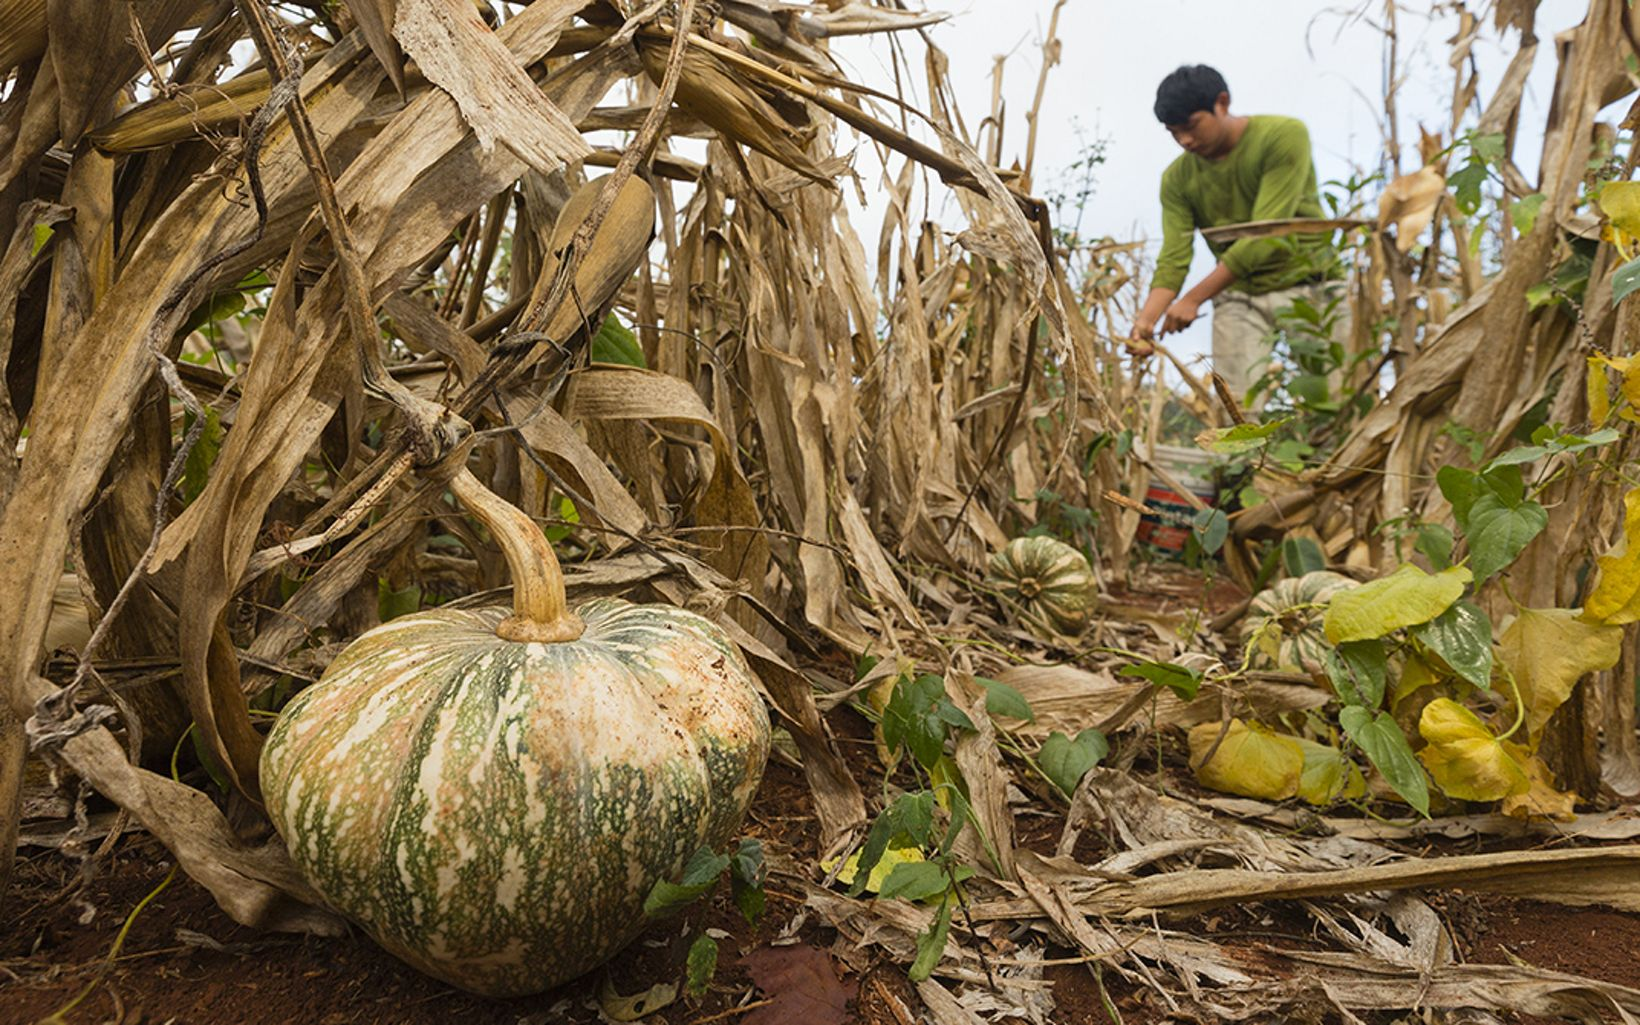 A farmer picks squash, beans and corn from his father's